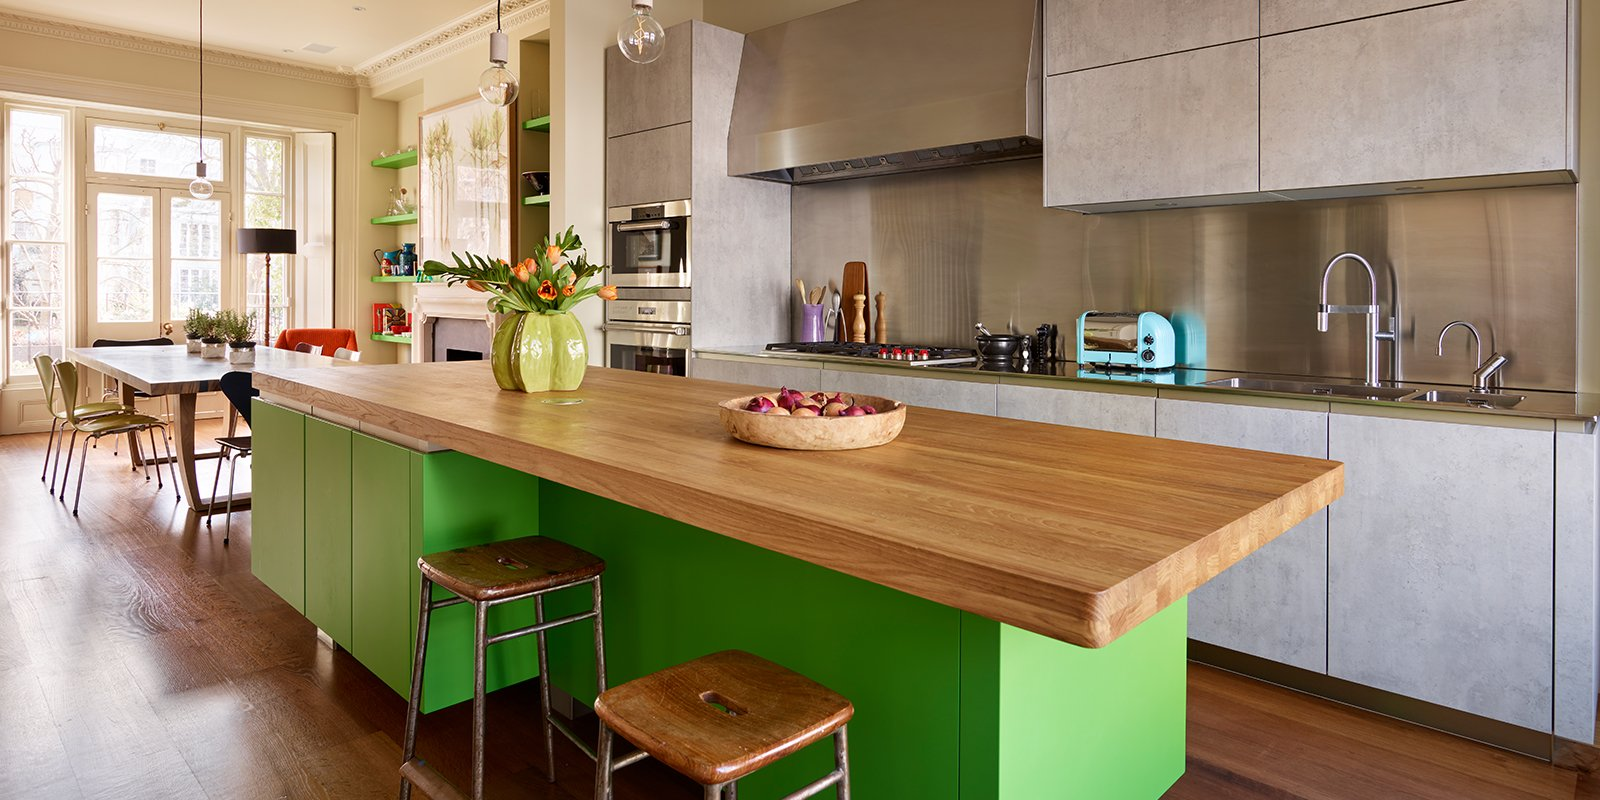 lime green lacquer kitchen with hand painted units